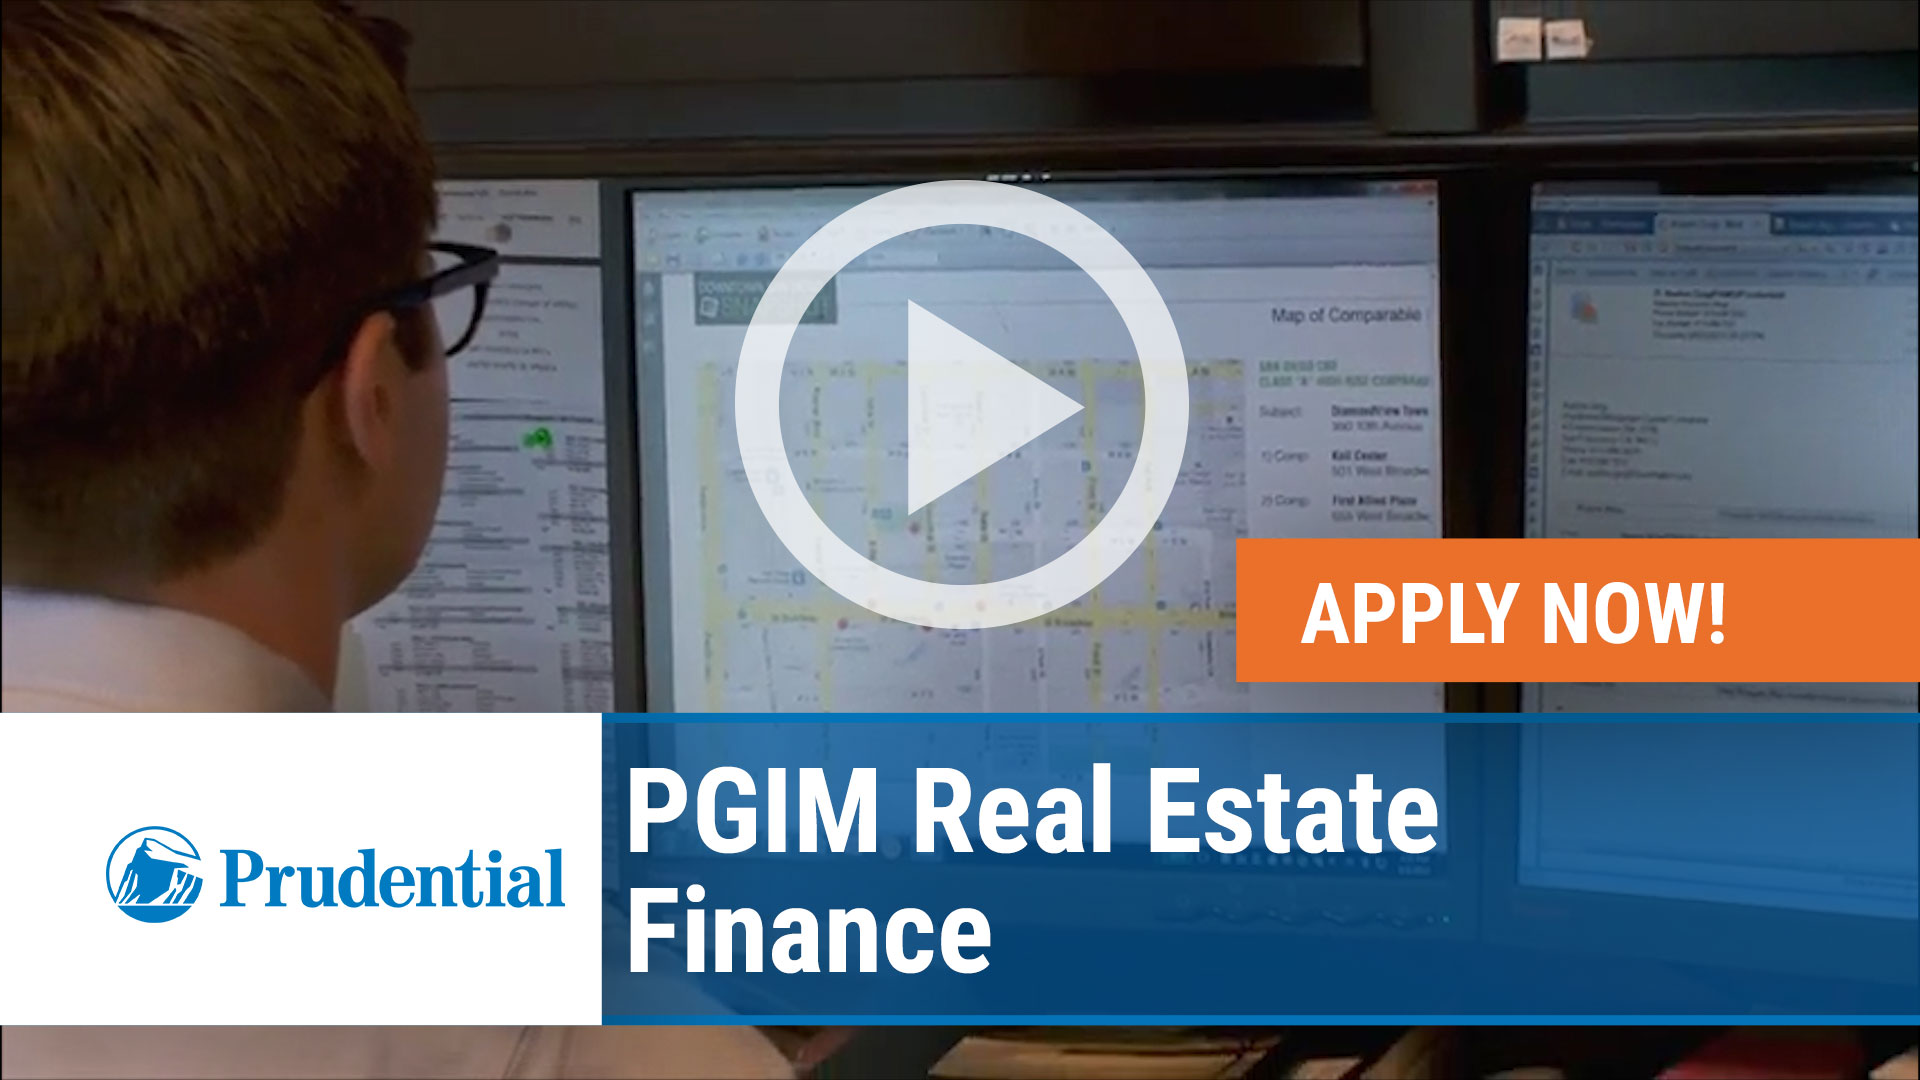 Watch our careers video for available job opening PGIM Real Estate Finance in Atlanta, GA